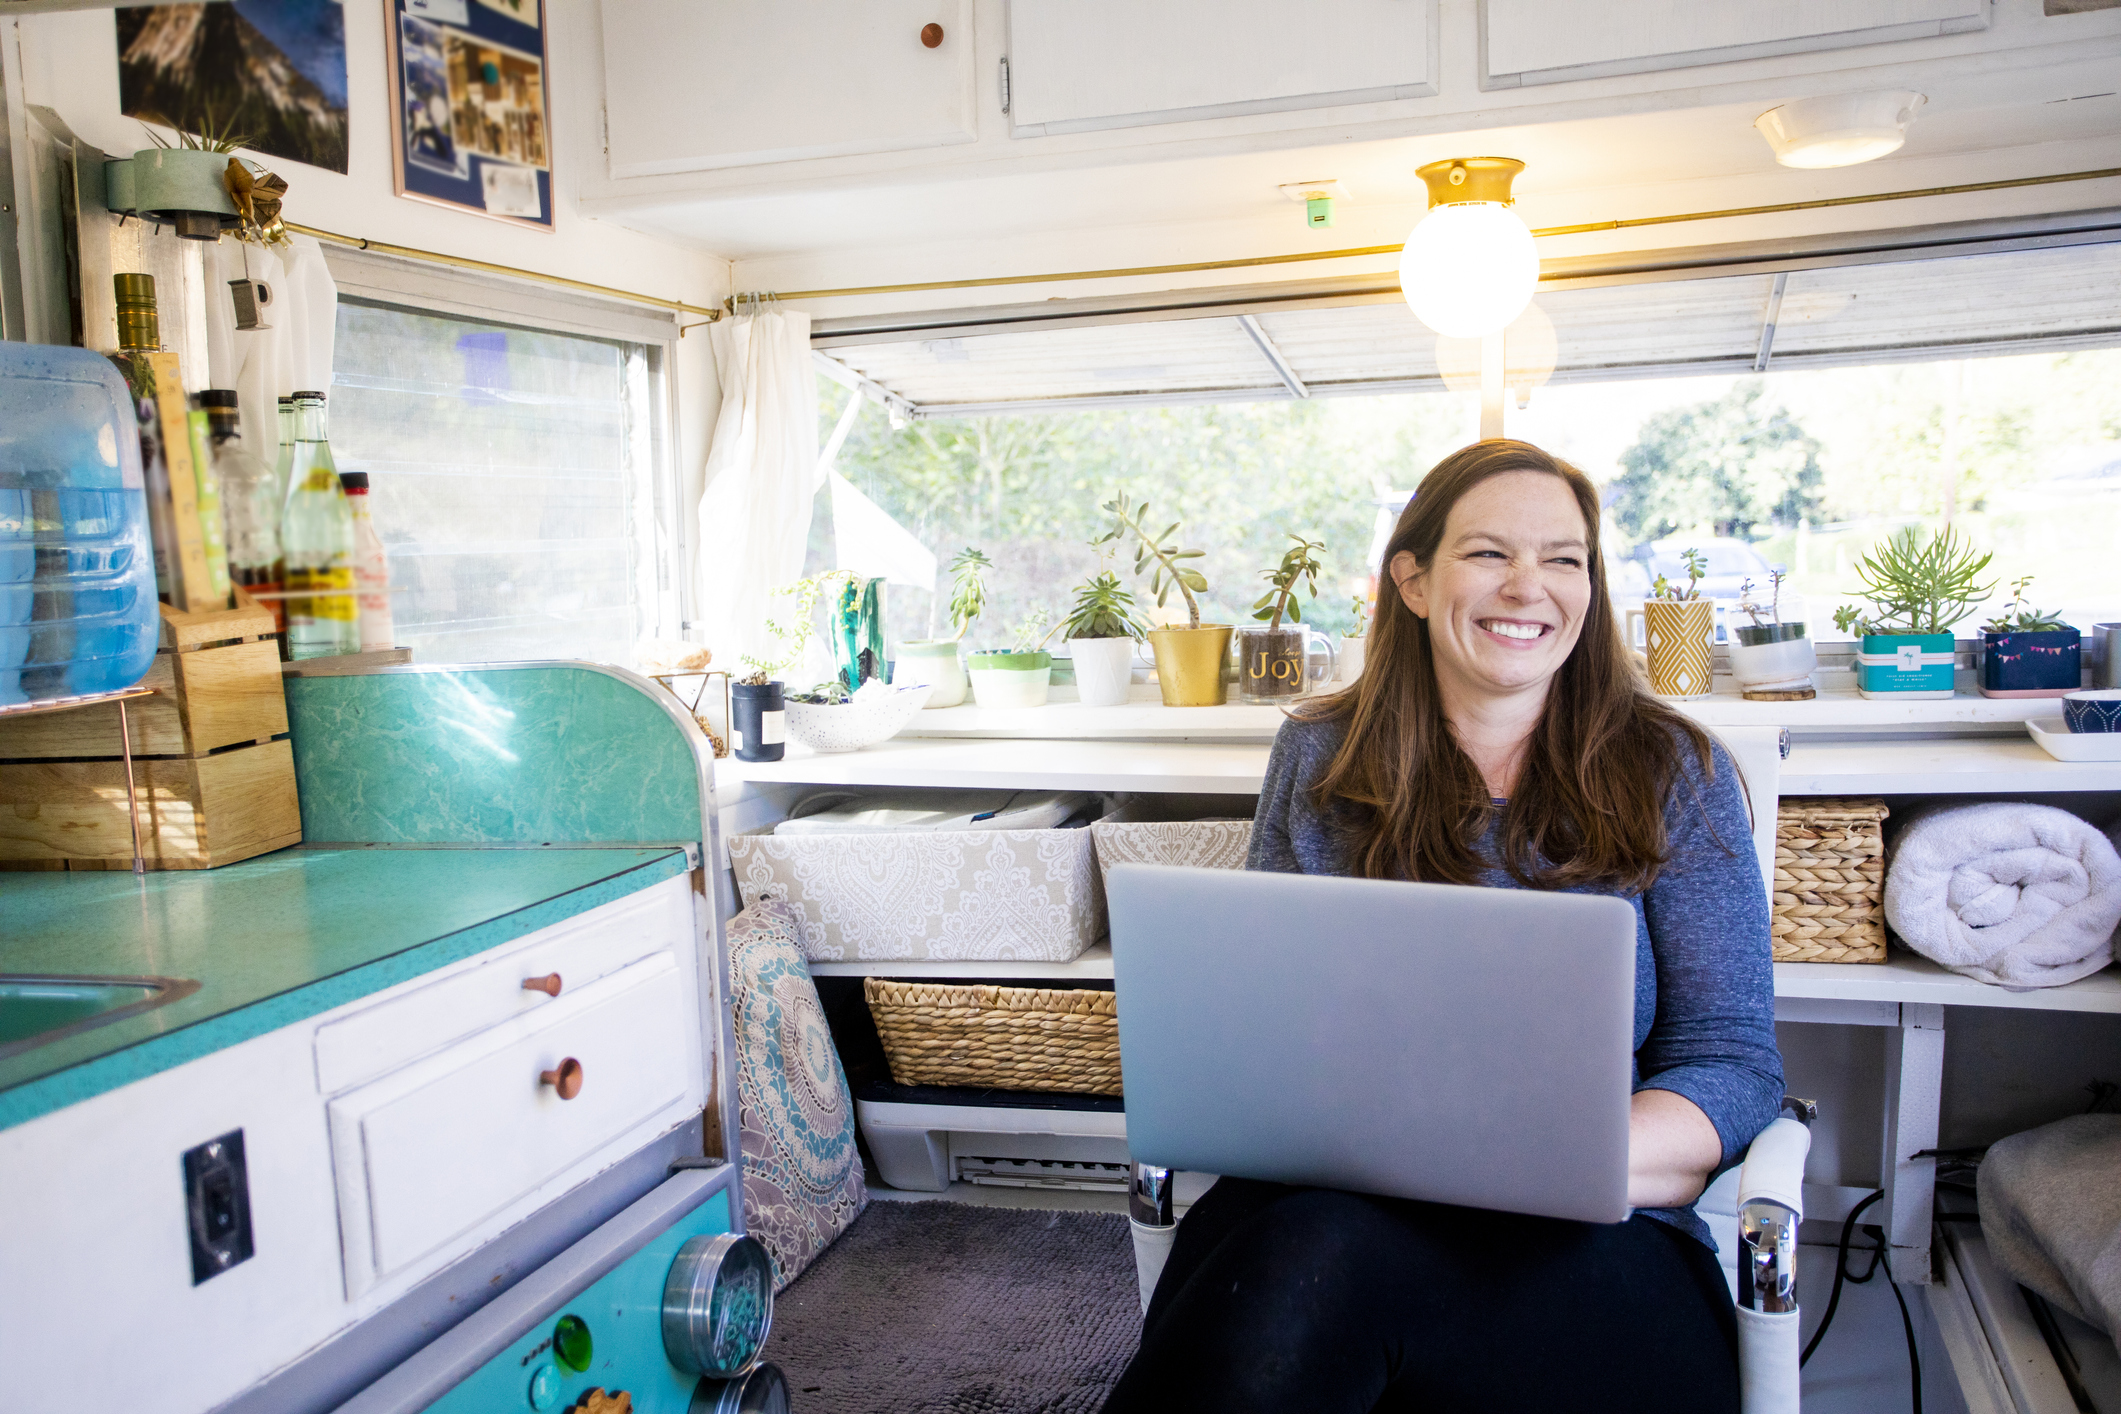 These Six Full-Time RVers Created RV Masterclass to Help Newbies Avoid Common Mistakes